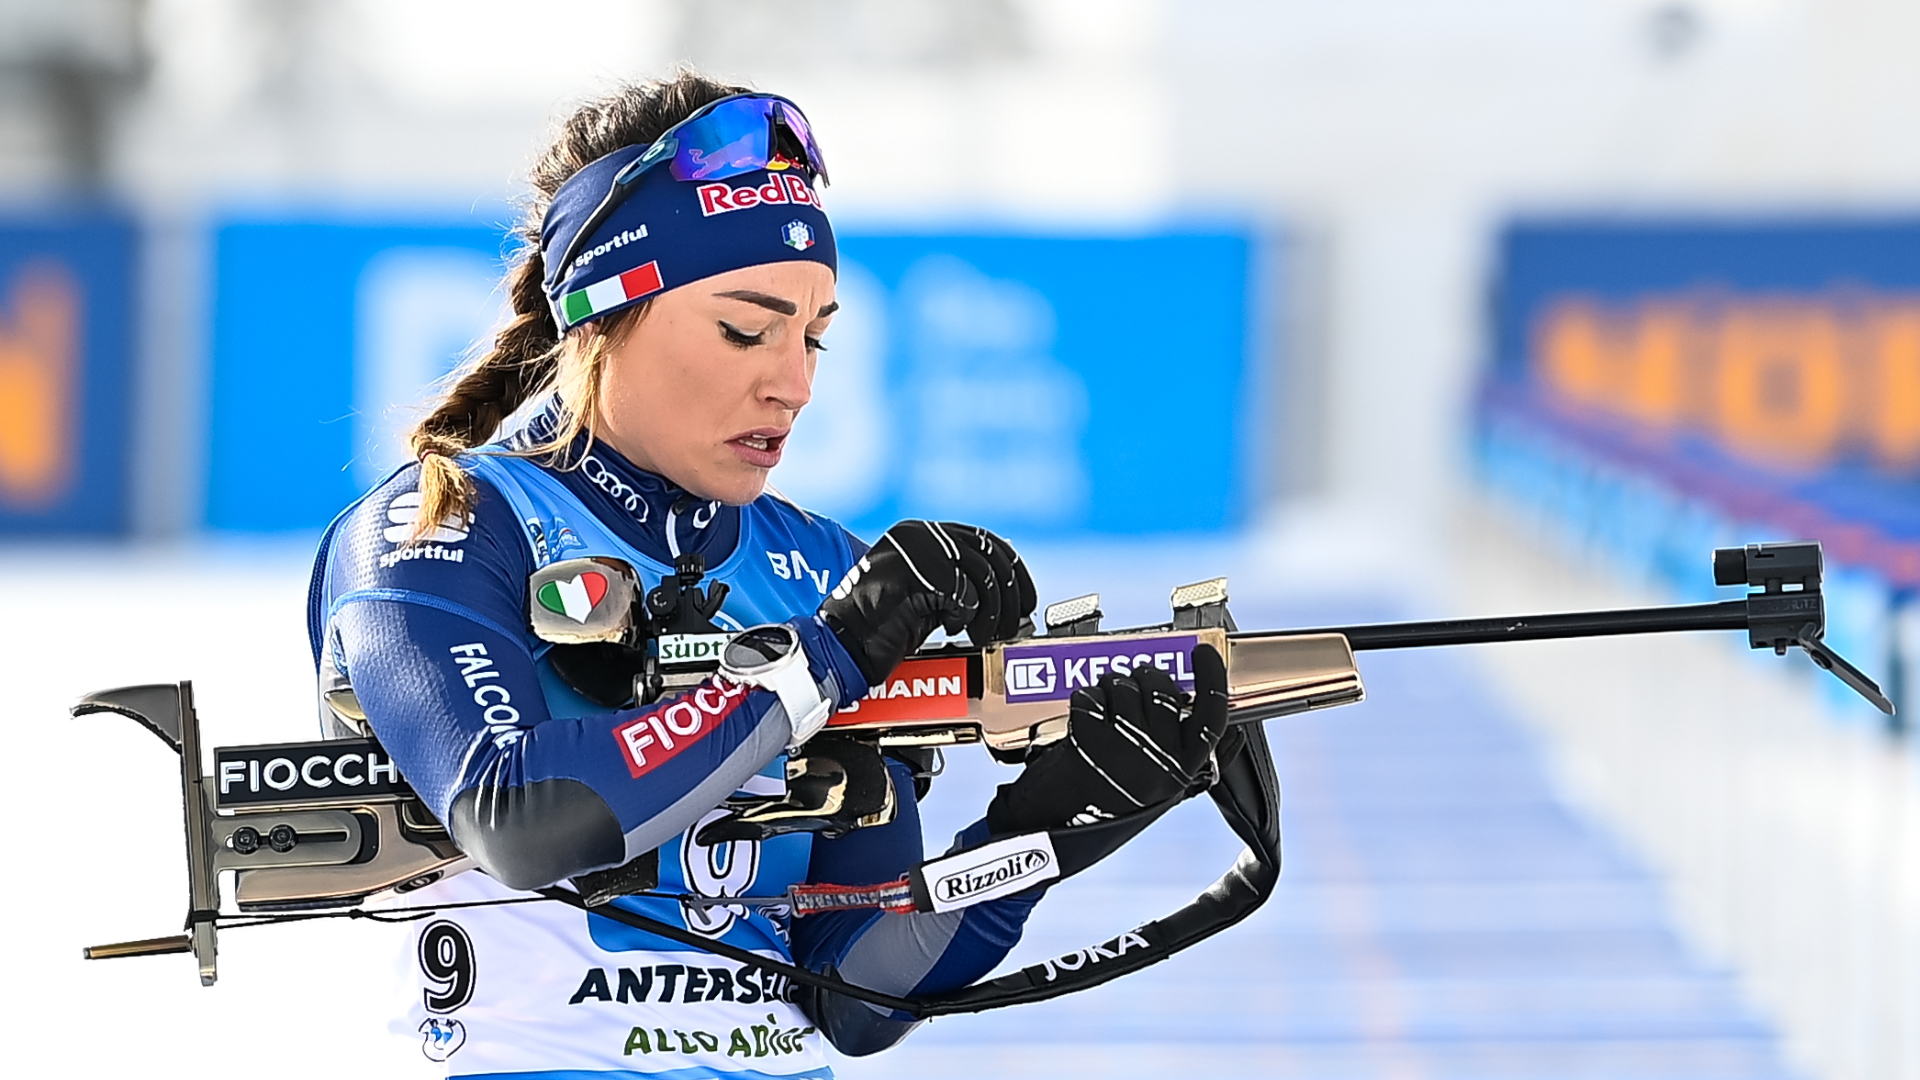 BIATHLON. A WORLD CHAMPIONSHIP WITHOUT MEDALS FOR THE ITALIAN NATIONAL TEAM